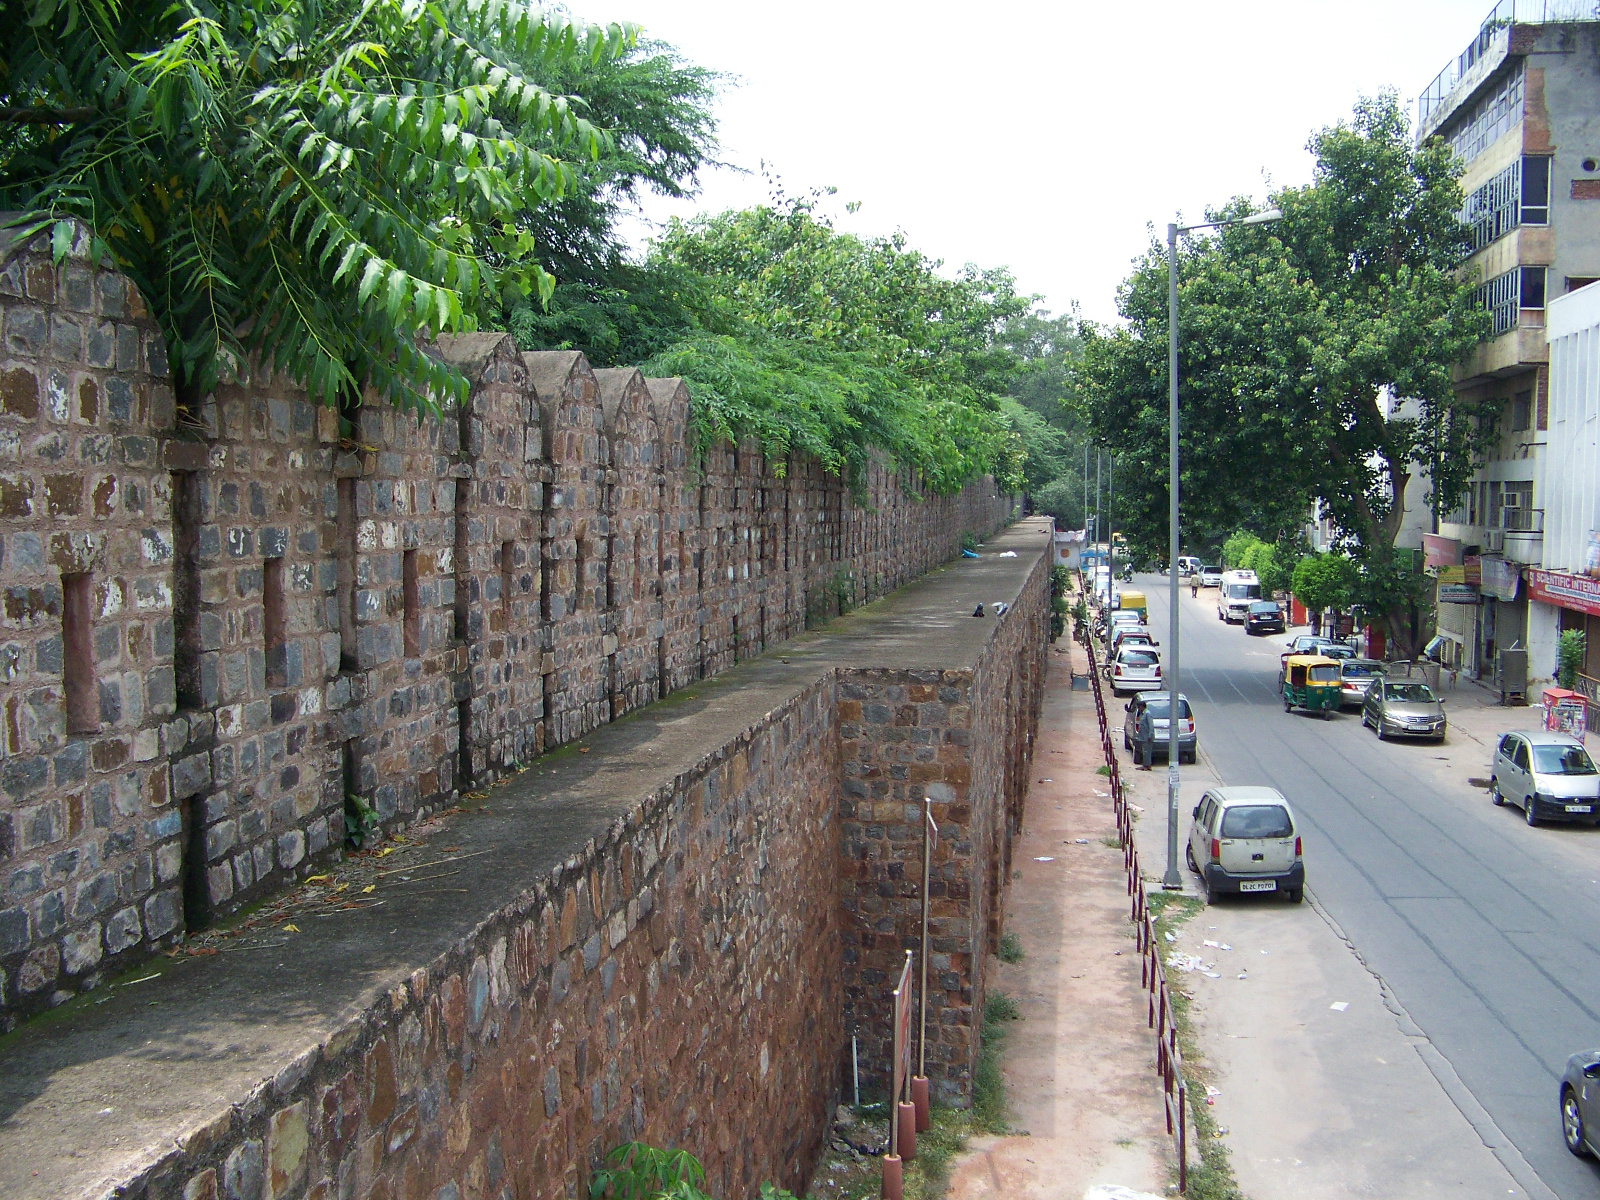 View from ramparts of Delhi's walls.